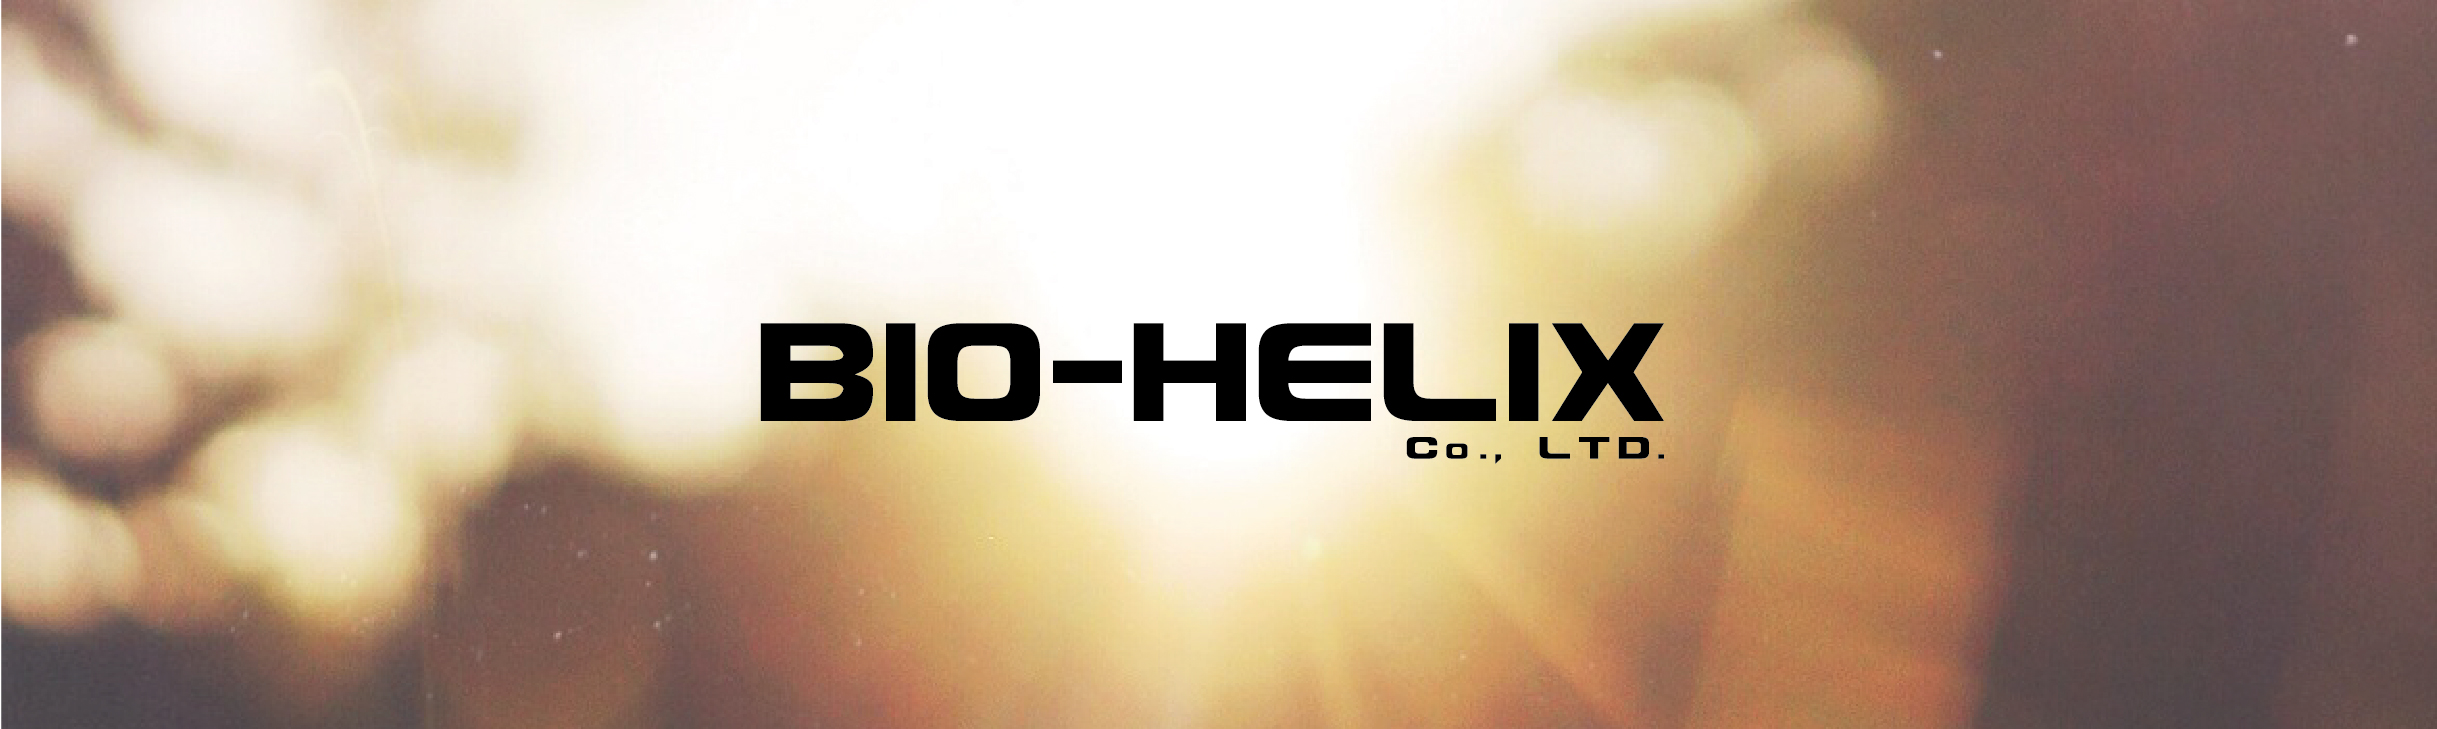 About bio helix